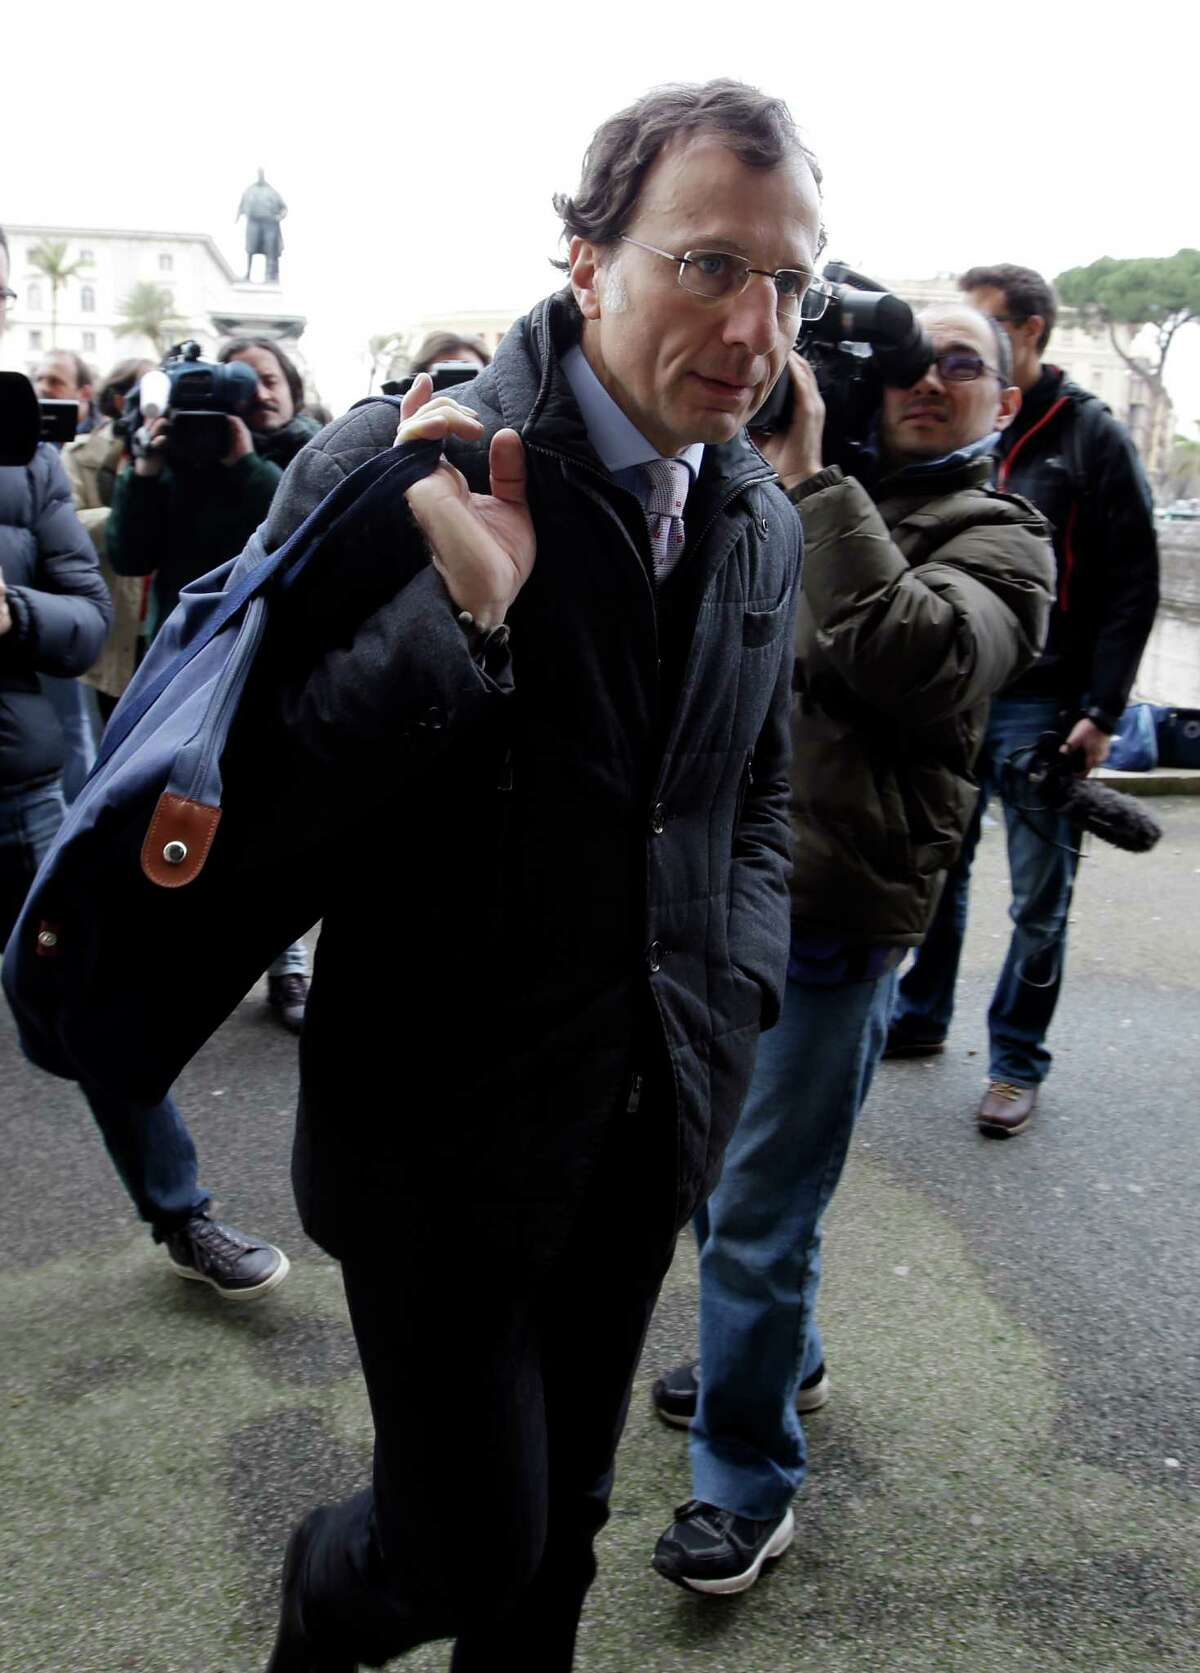 Francesco Maresca, lawyer of Meredith Kercher's relatives, center, arrives at Italy's Court of Cassation, in Rome, Tuesday.